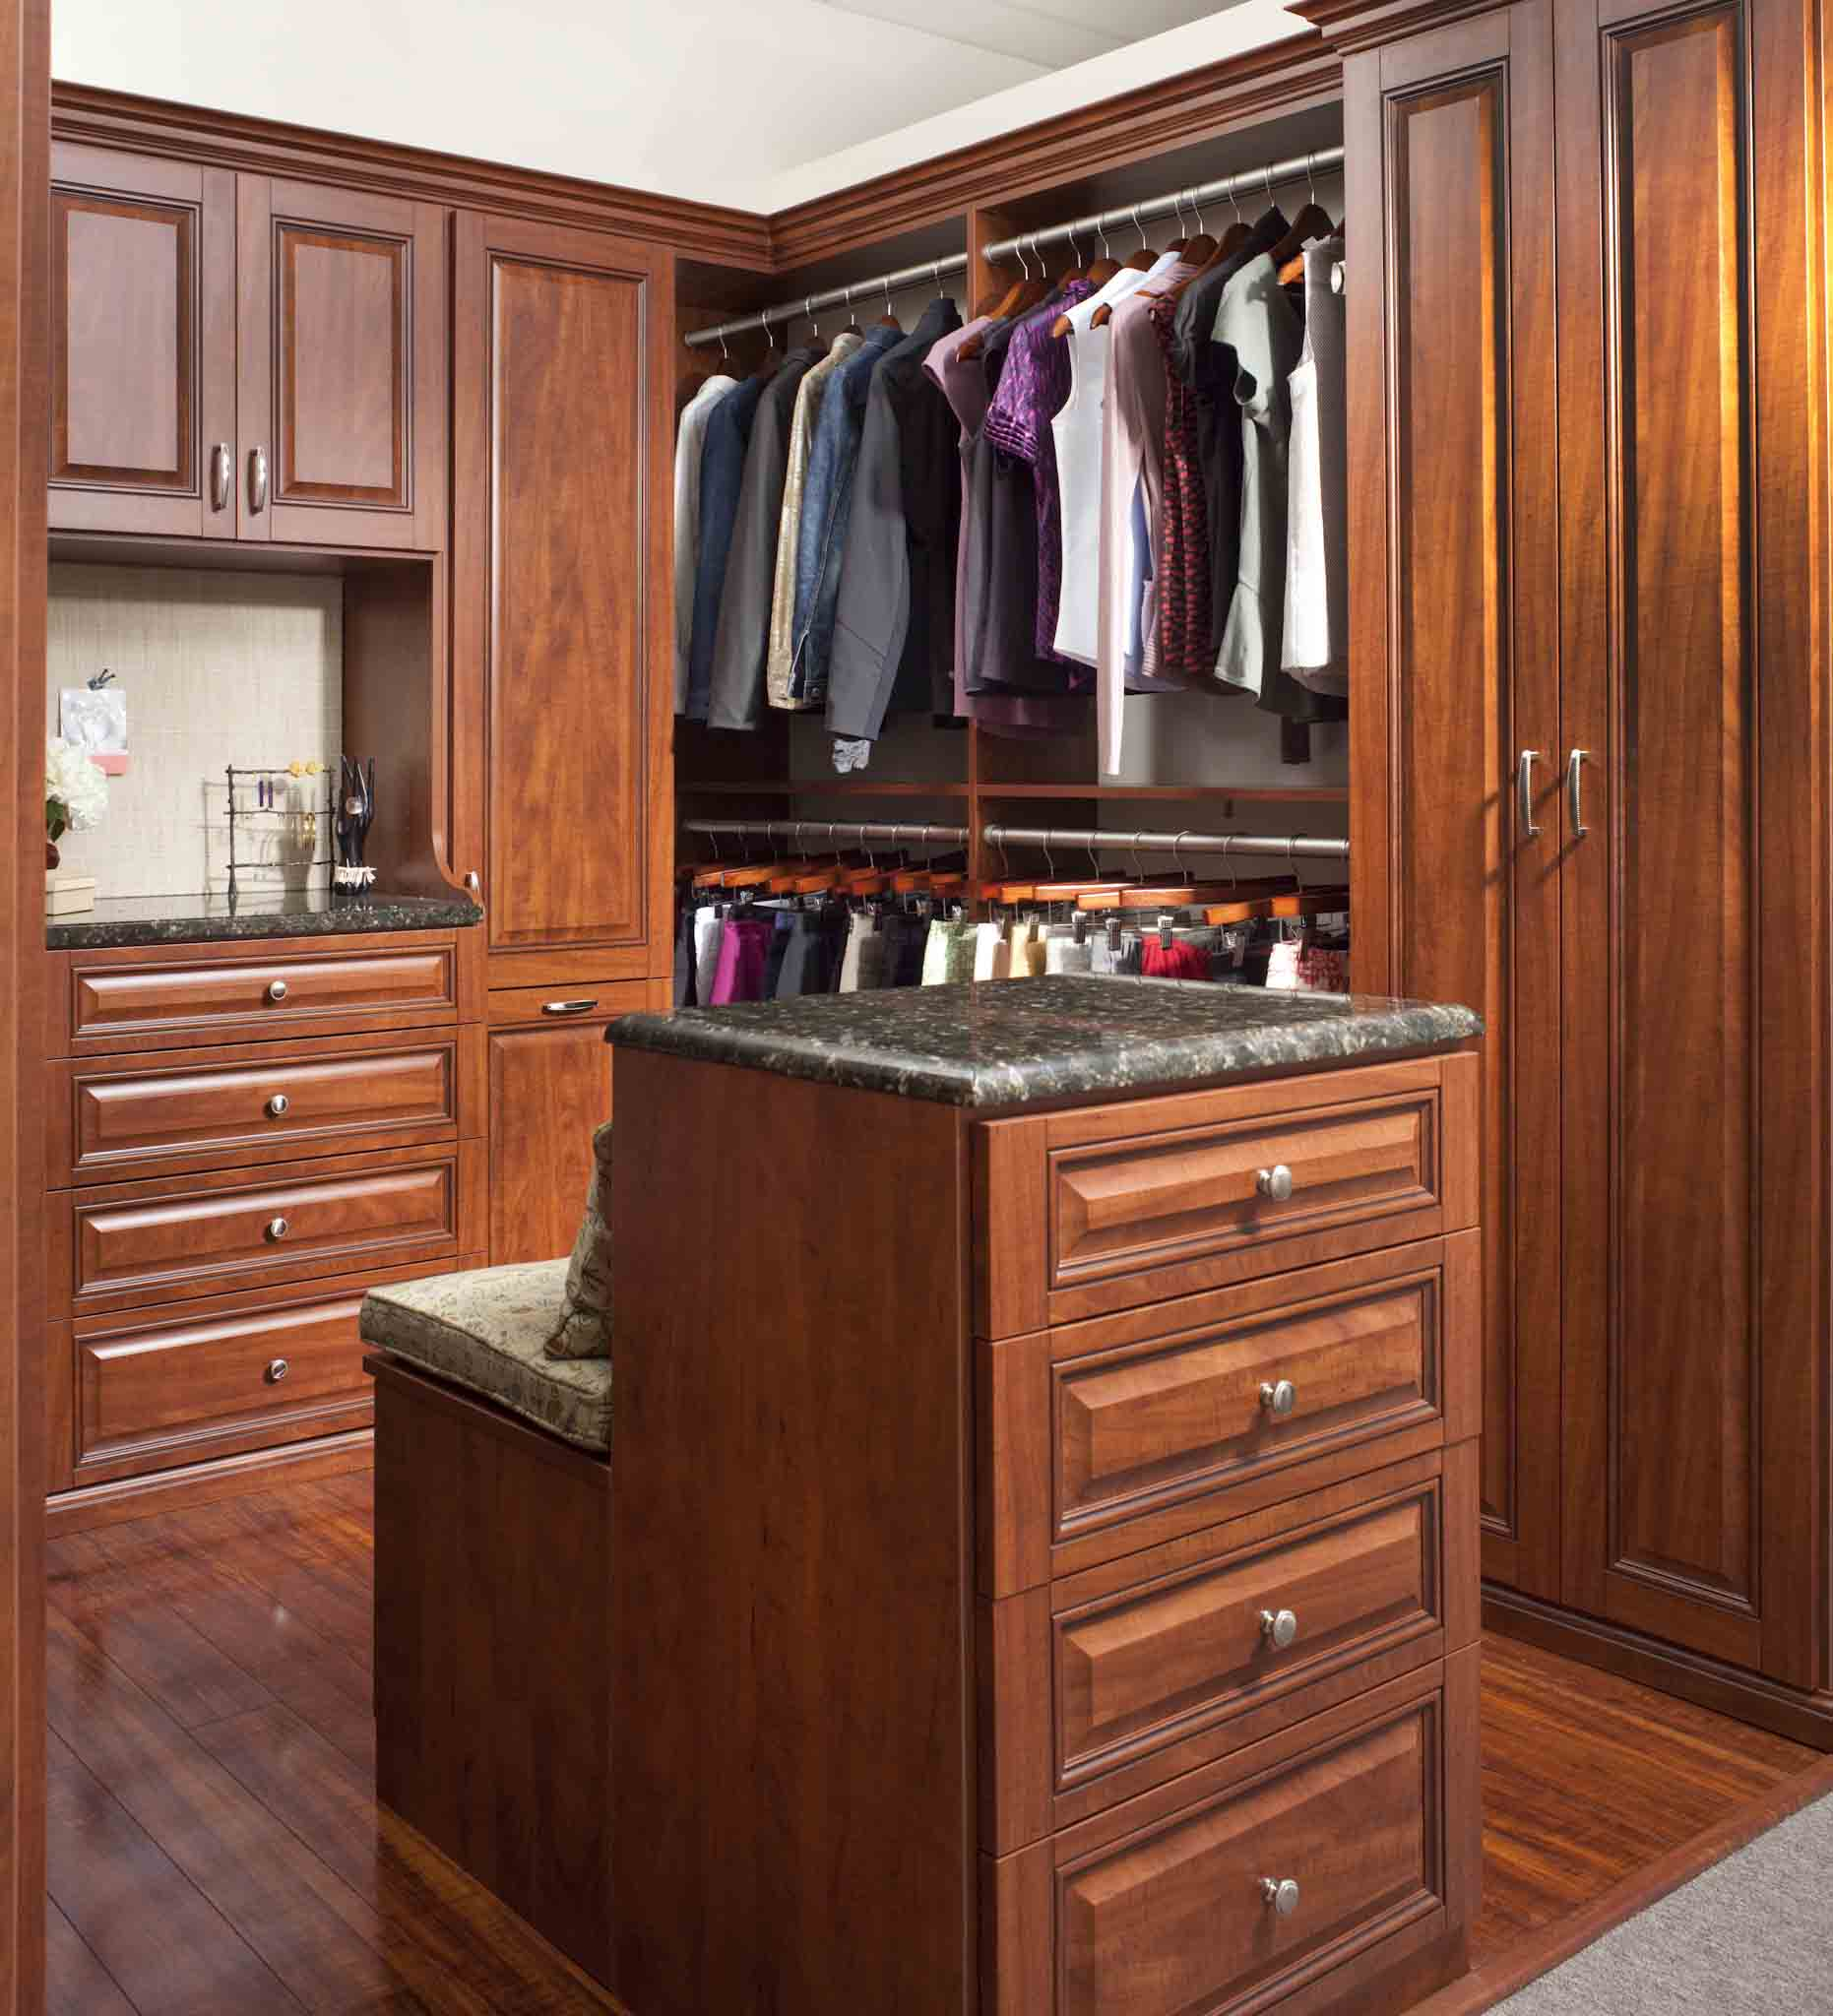 How A Great Closet Design Can Change Your Life